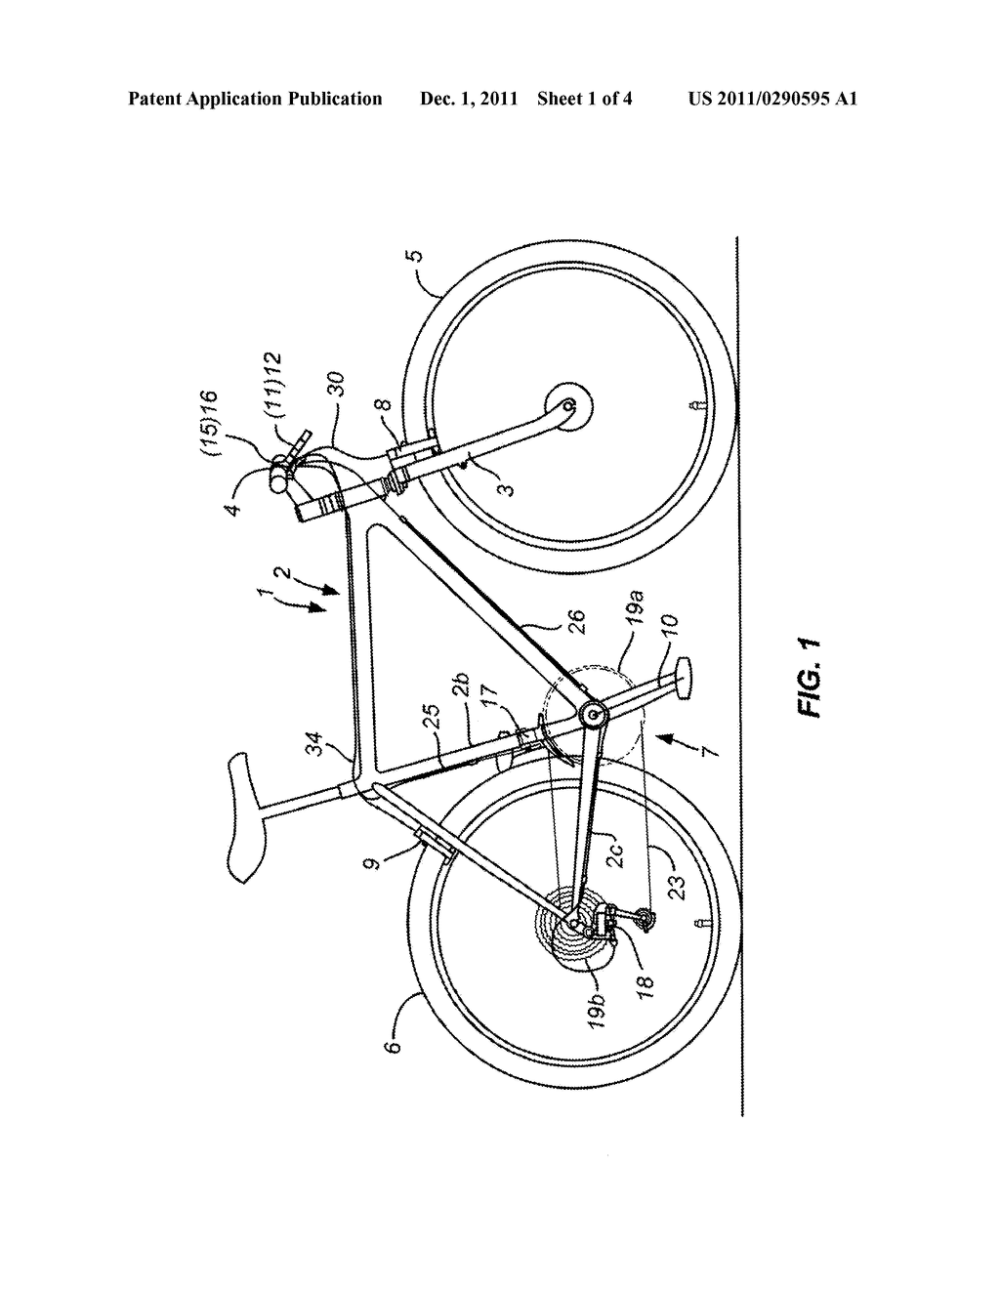 medium resolution of reversible hydraulic caliper brake for a bicycle diagram schematic and image 02